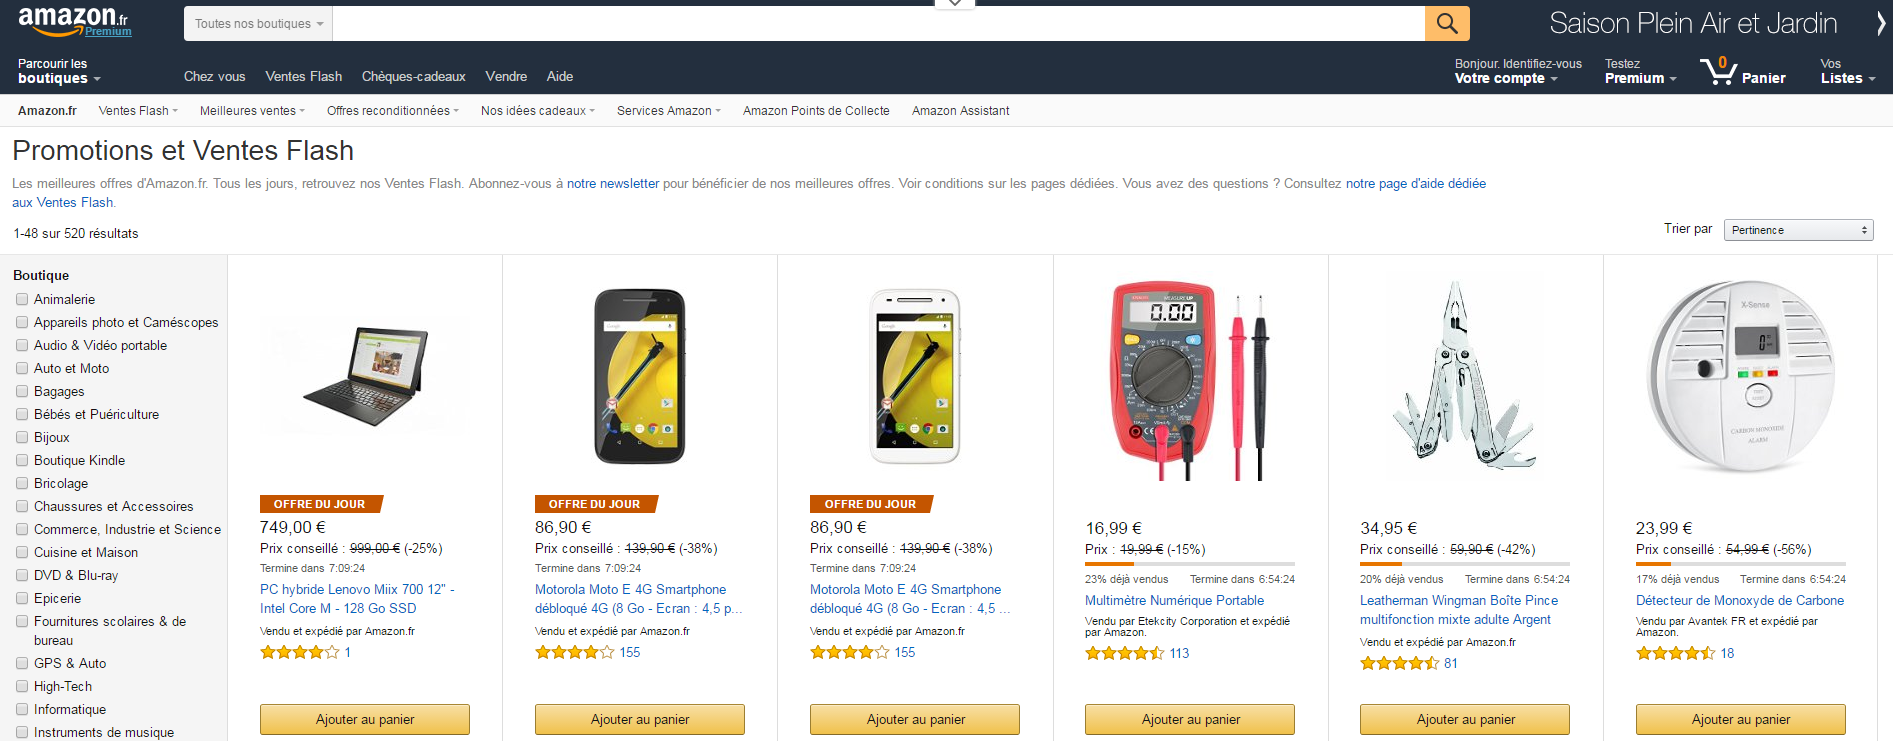 Ebay Amazon Priceminister Quel Site Choisir